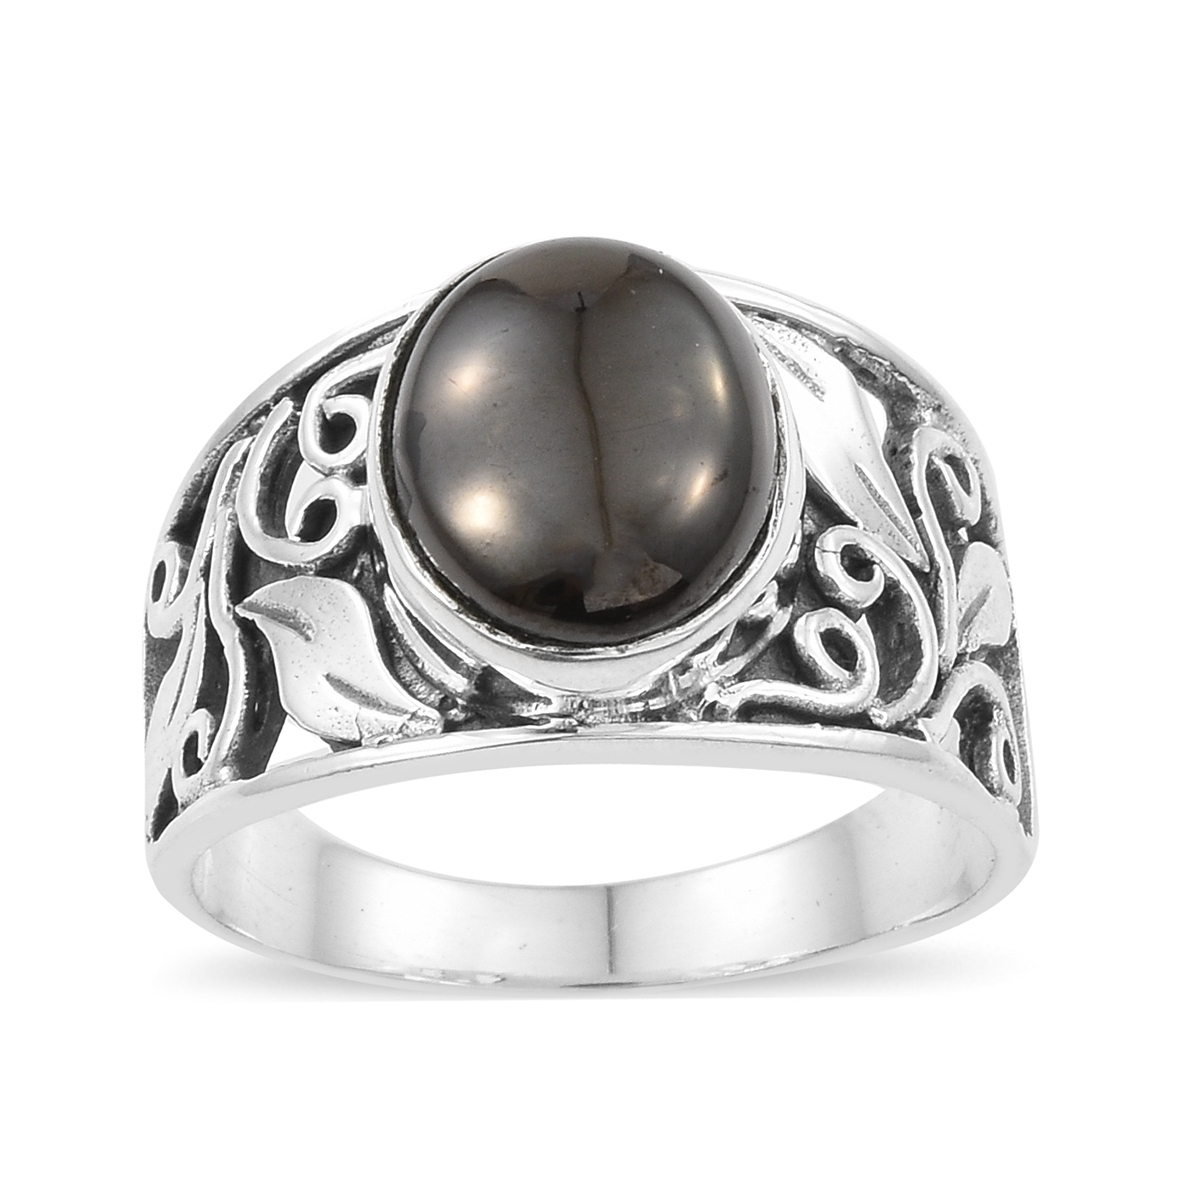 a6291cb51159c Artisan Crafted Shungite Sterling Silver Ring (Size 5.0) TGW 2.96 cts.